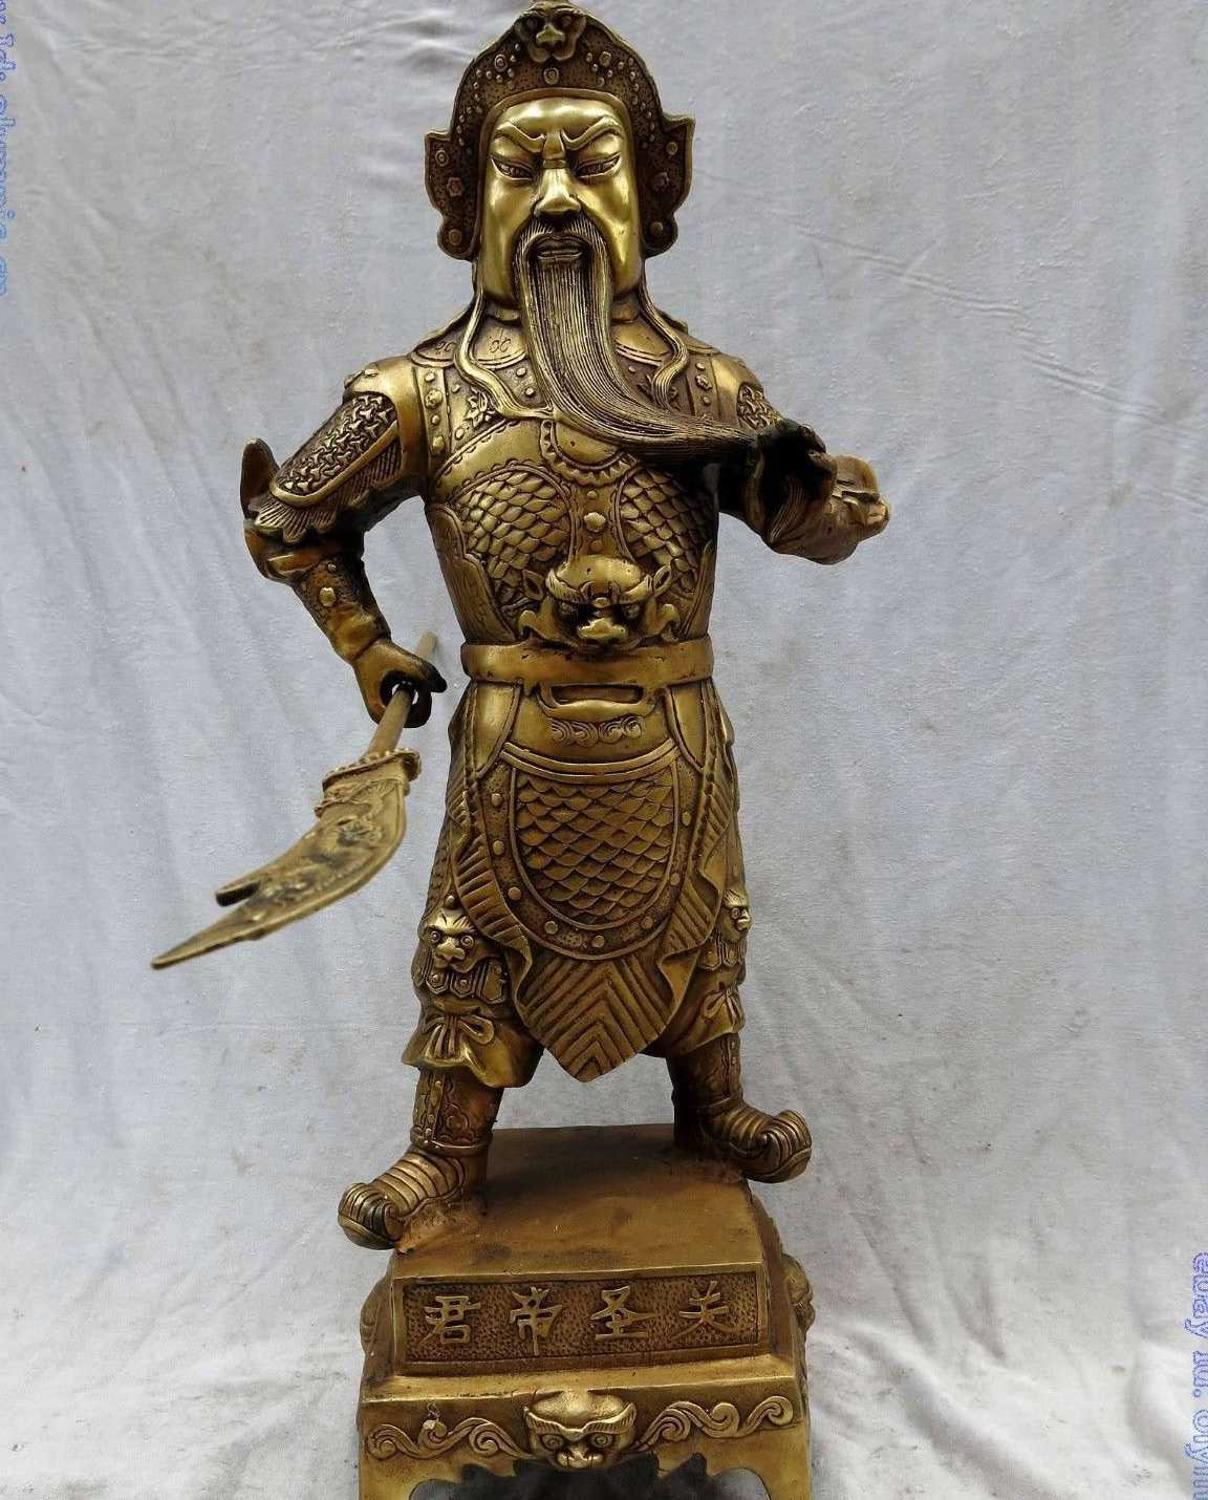 23China brass copper tiger staunch battle saint Guan Yu buddha Sculpture Statue23China brass copper tiger staunch battle saint Guan Yu buddha Sculpture Statue